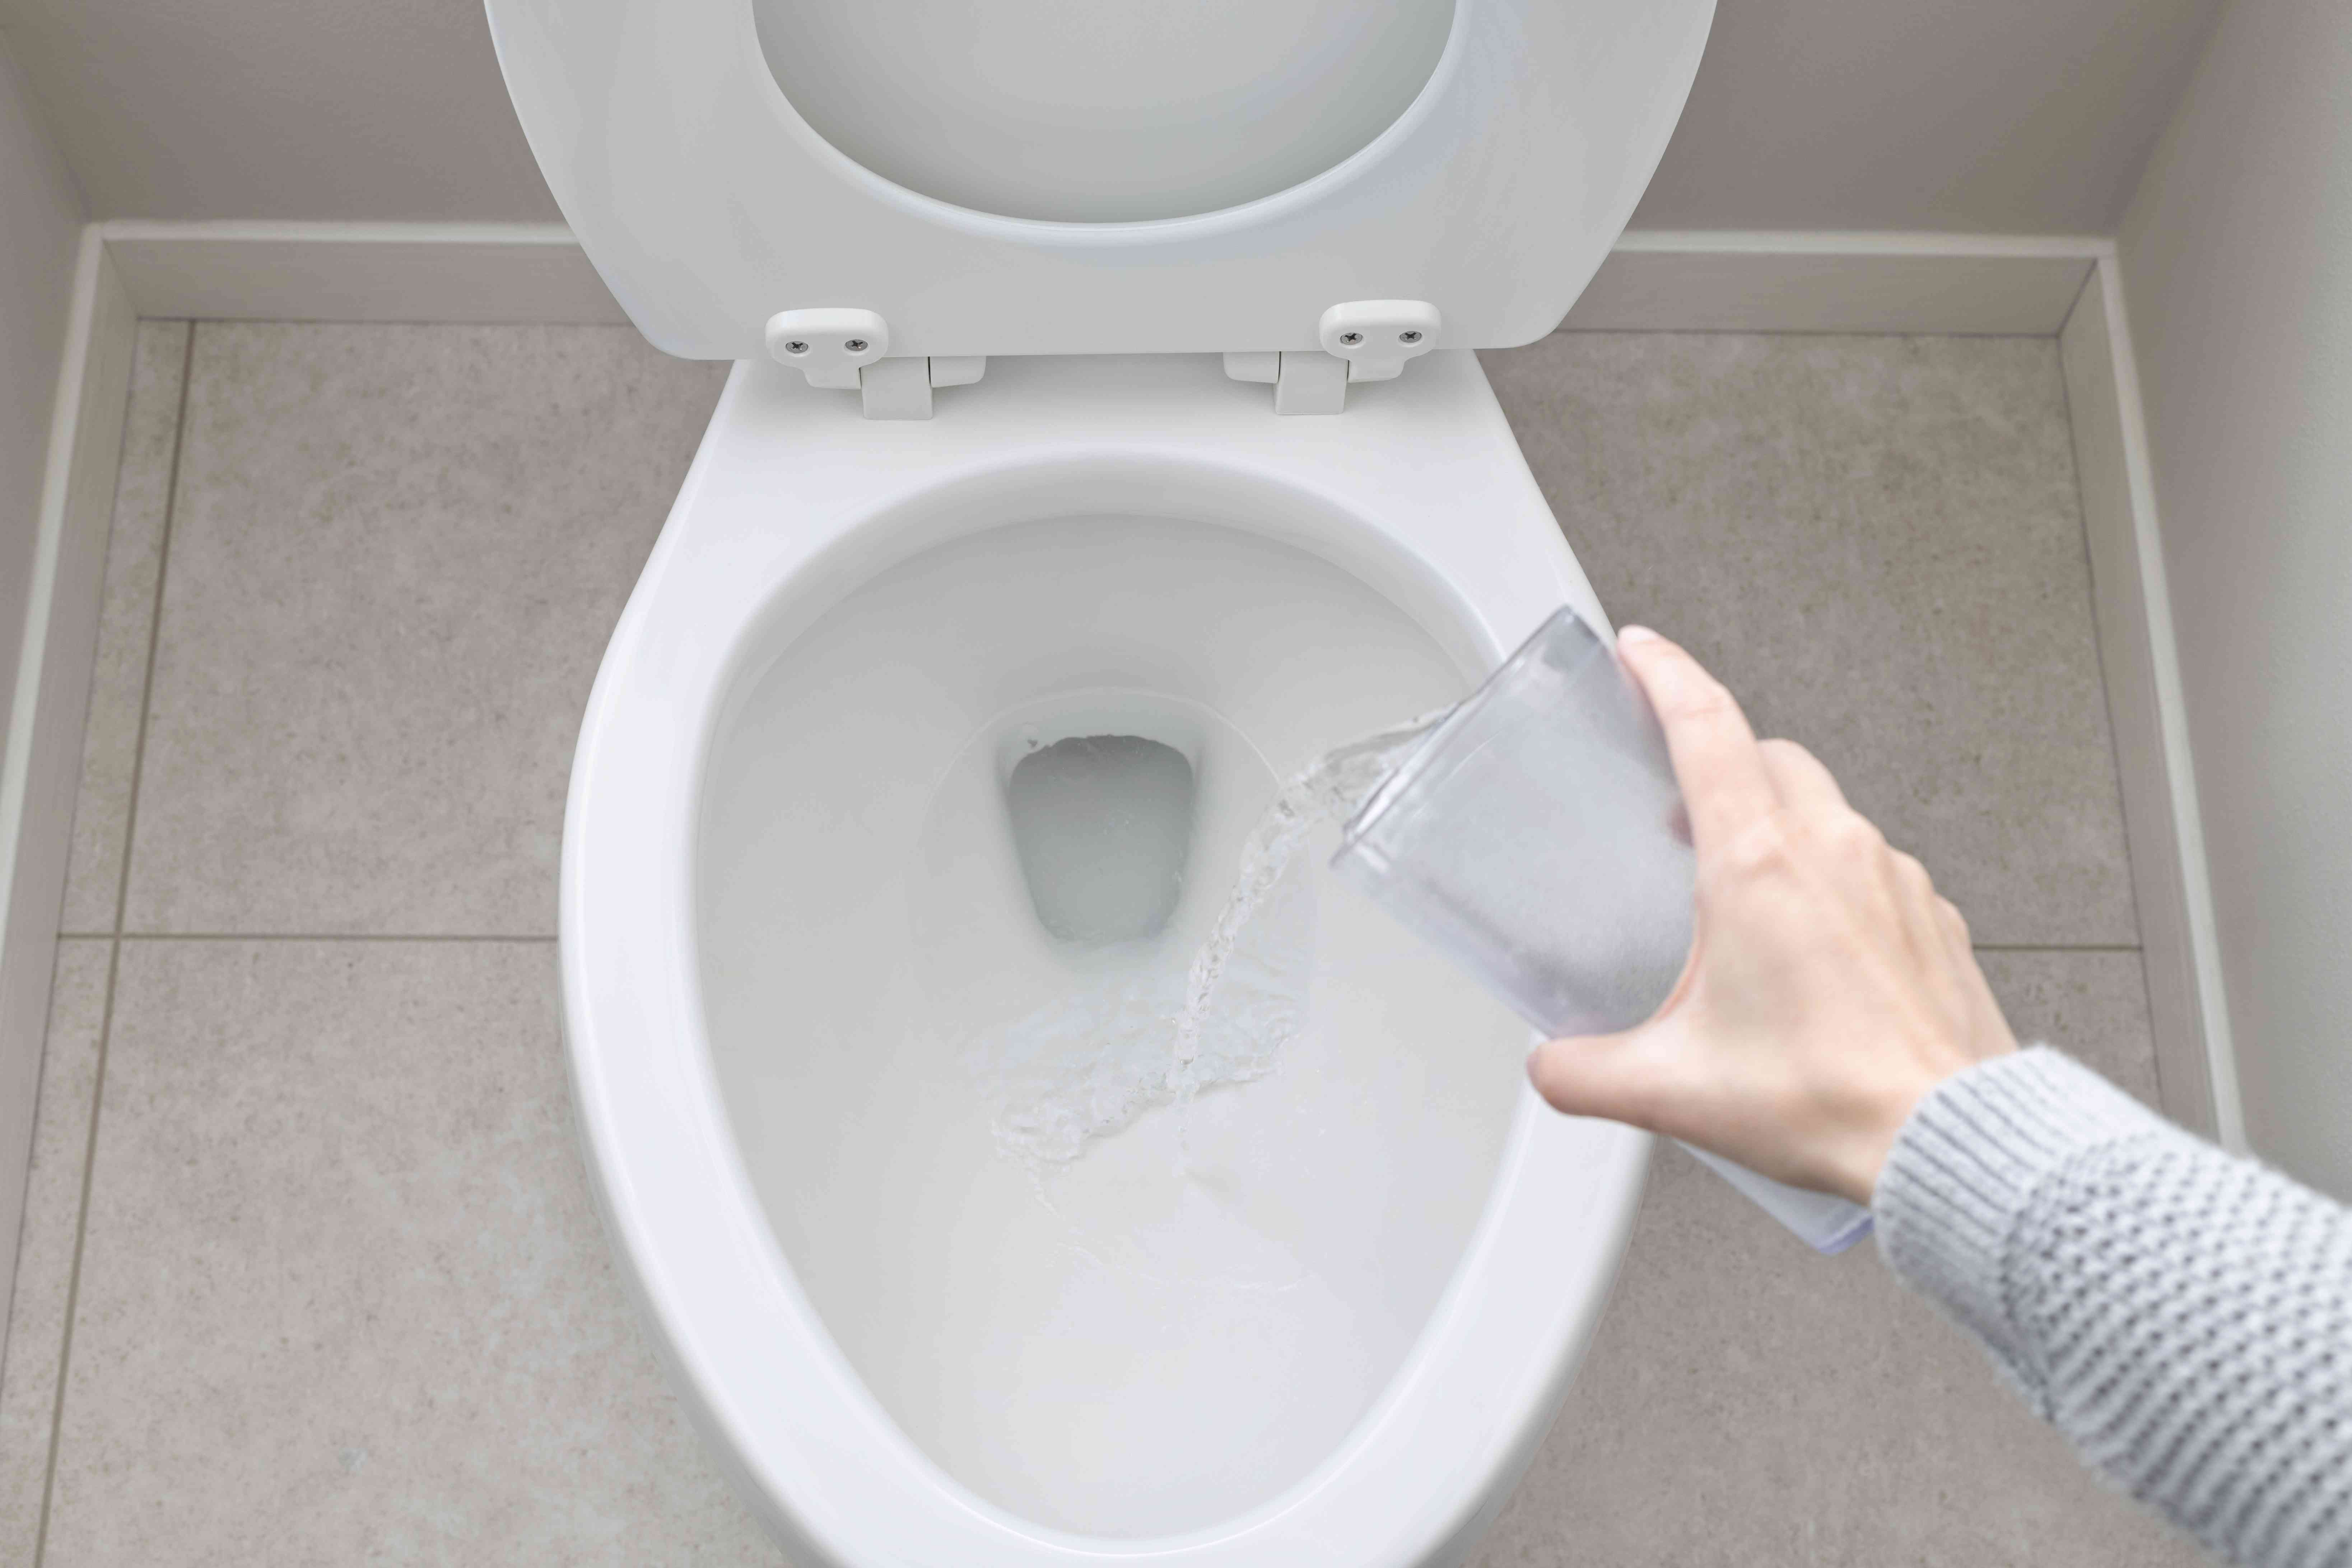 Toilet bowl being filled with water from cup held in hand